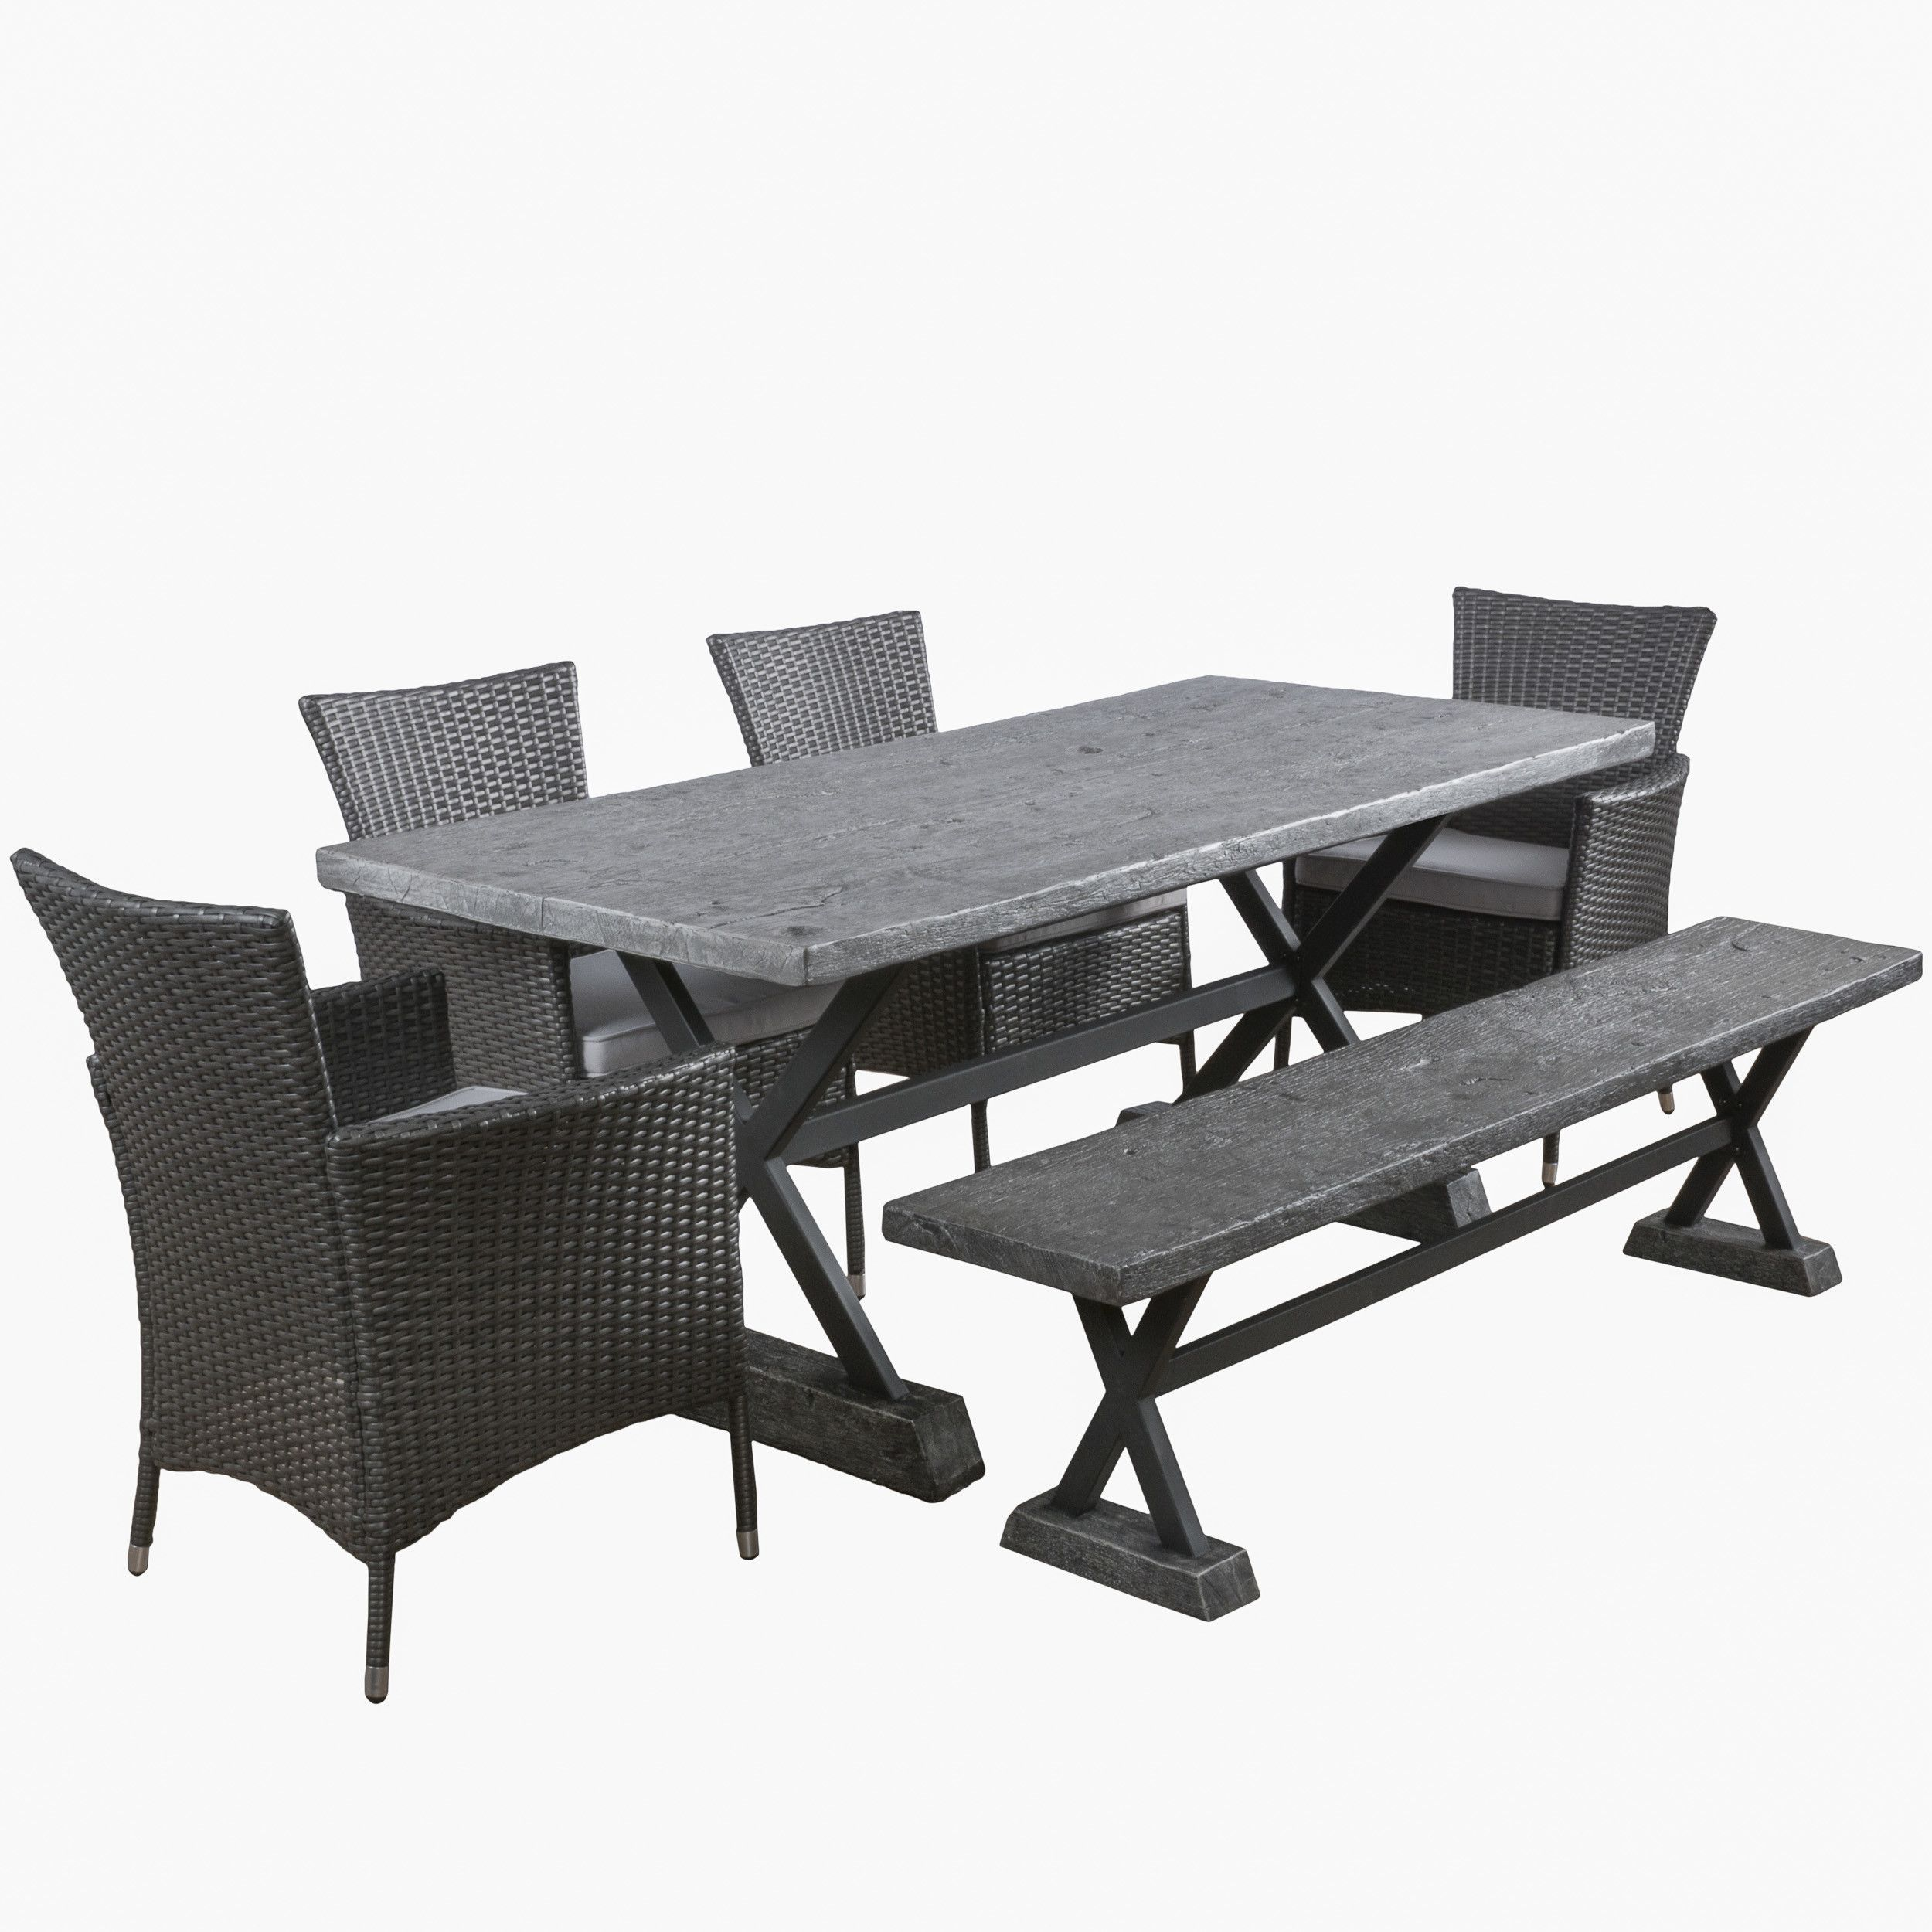 Blagnac 6 Piece Dining Set With Cushions Dining Set With Bench Patio Furniture Sets Outdoor Dining Set